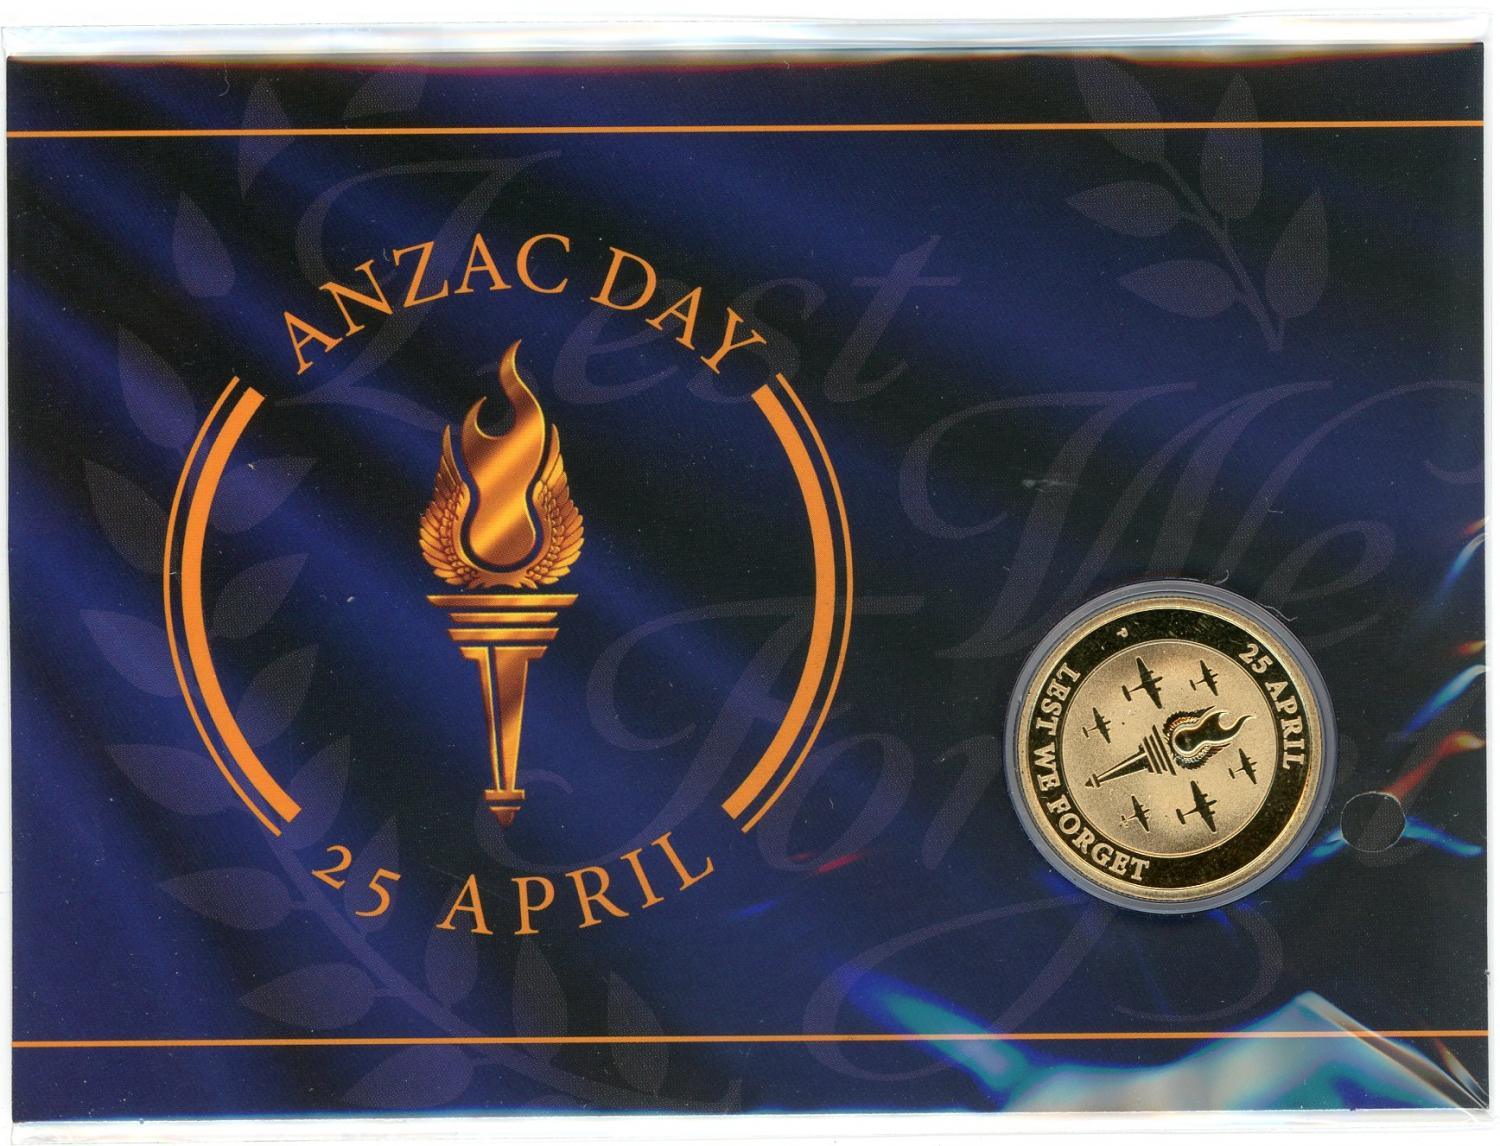 Thumbnail for 2021 Lest We Forget  - ANZAC Day 25 April - Perth Mint $1 AlBr Coin on Card